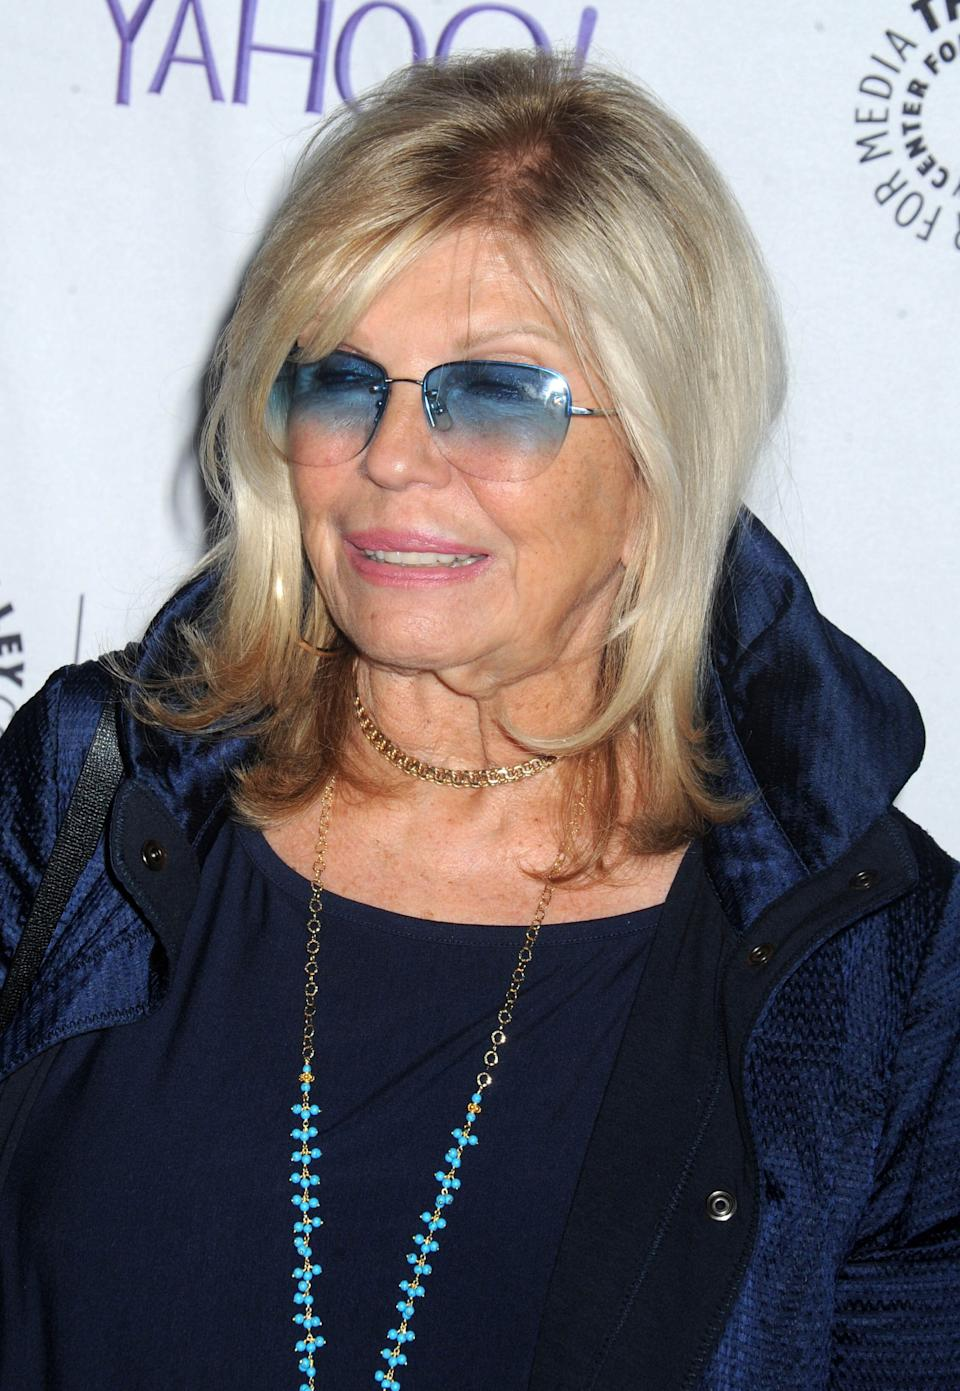 """Nancy Sinatra said she will """"never forgive"""" the people who voted for Donald Trump. (Photo: Star Max/IPx)"""